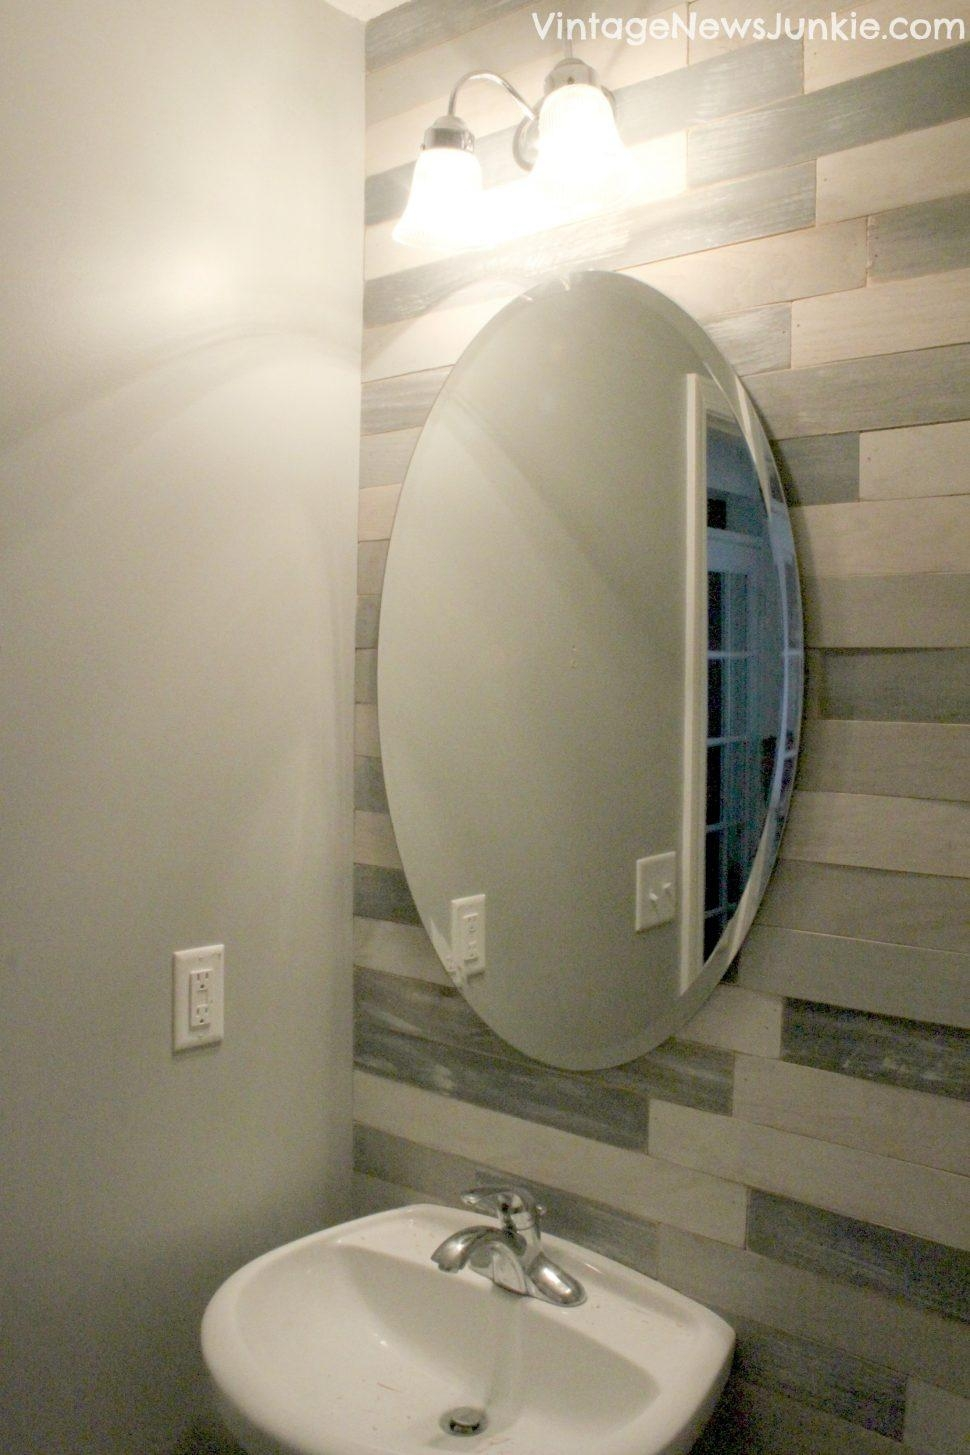 Bathroom Wall Mirrors – Realie In Wall Mirrors For Bathrooms (Image 4 of 20)